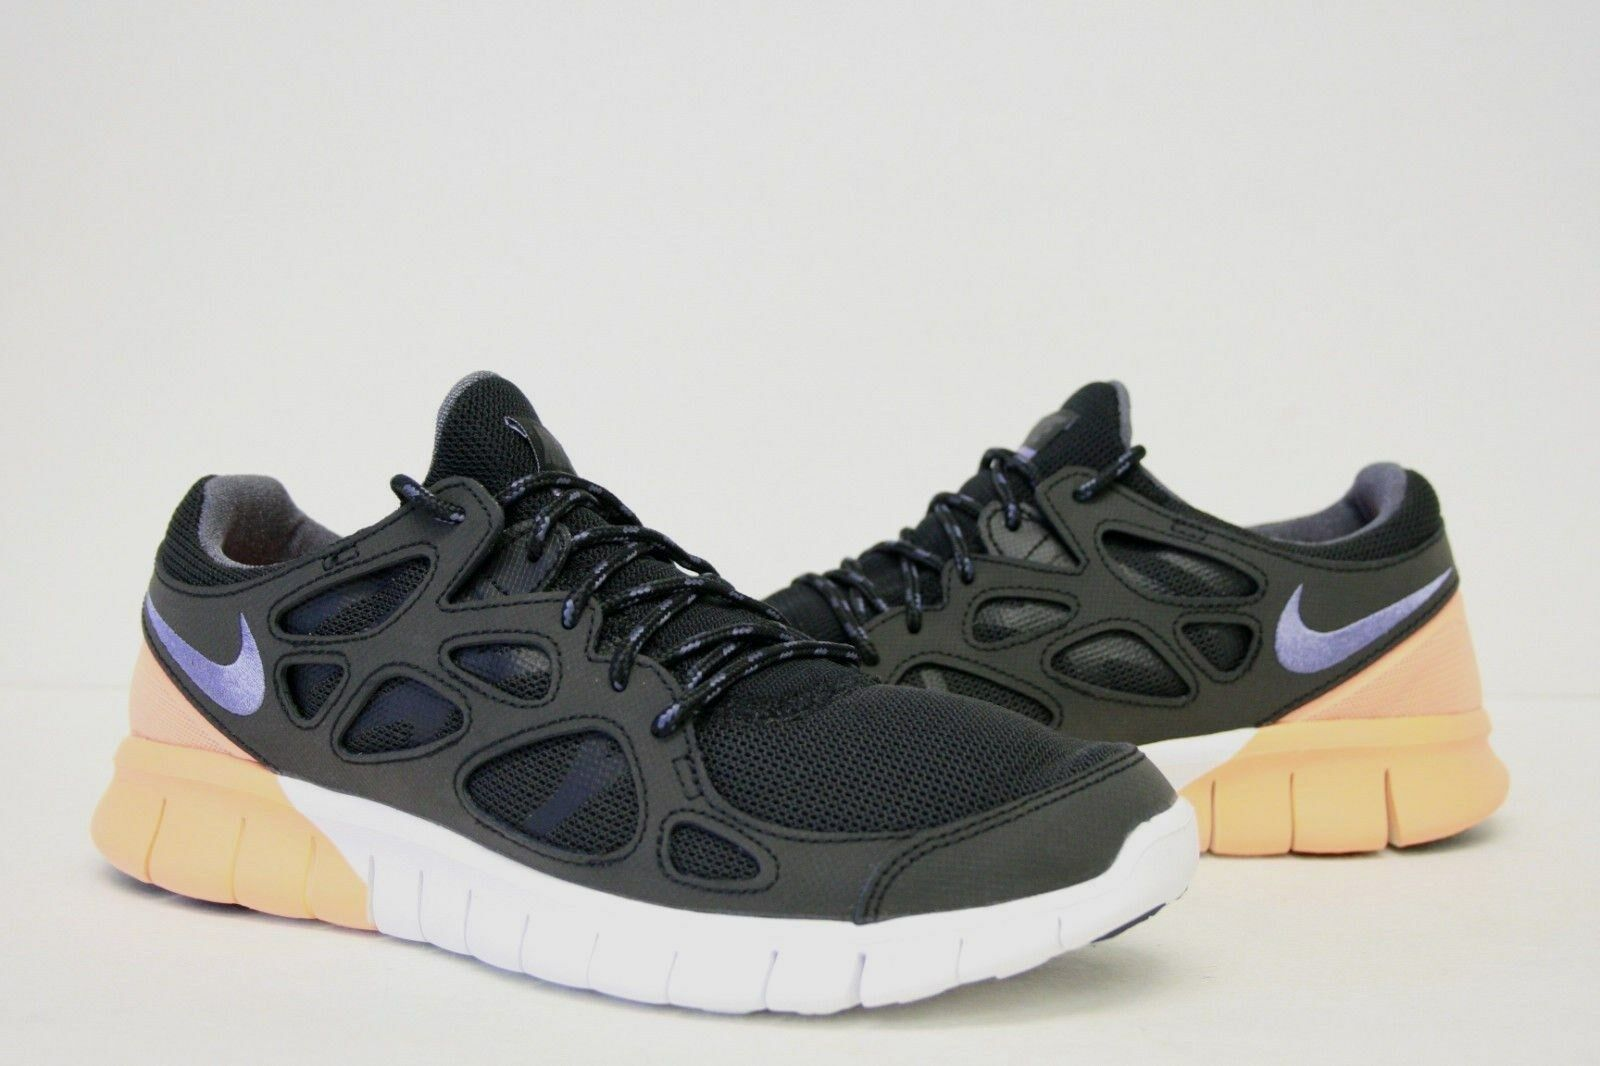 4c0298de08 new Nike Free Run 2 Mens 537732-051 Mens Running Shoes 7.5~12 All ...